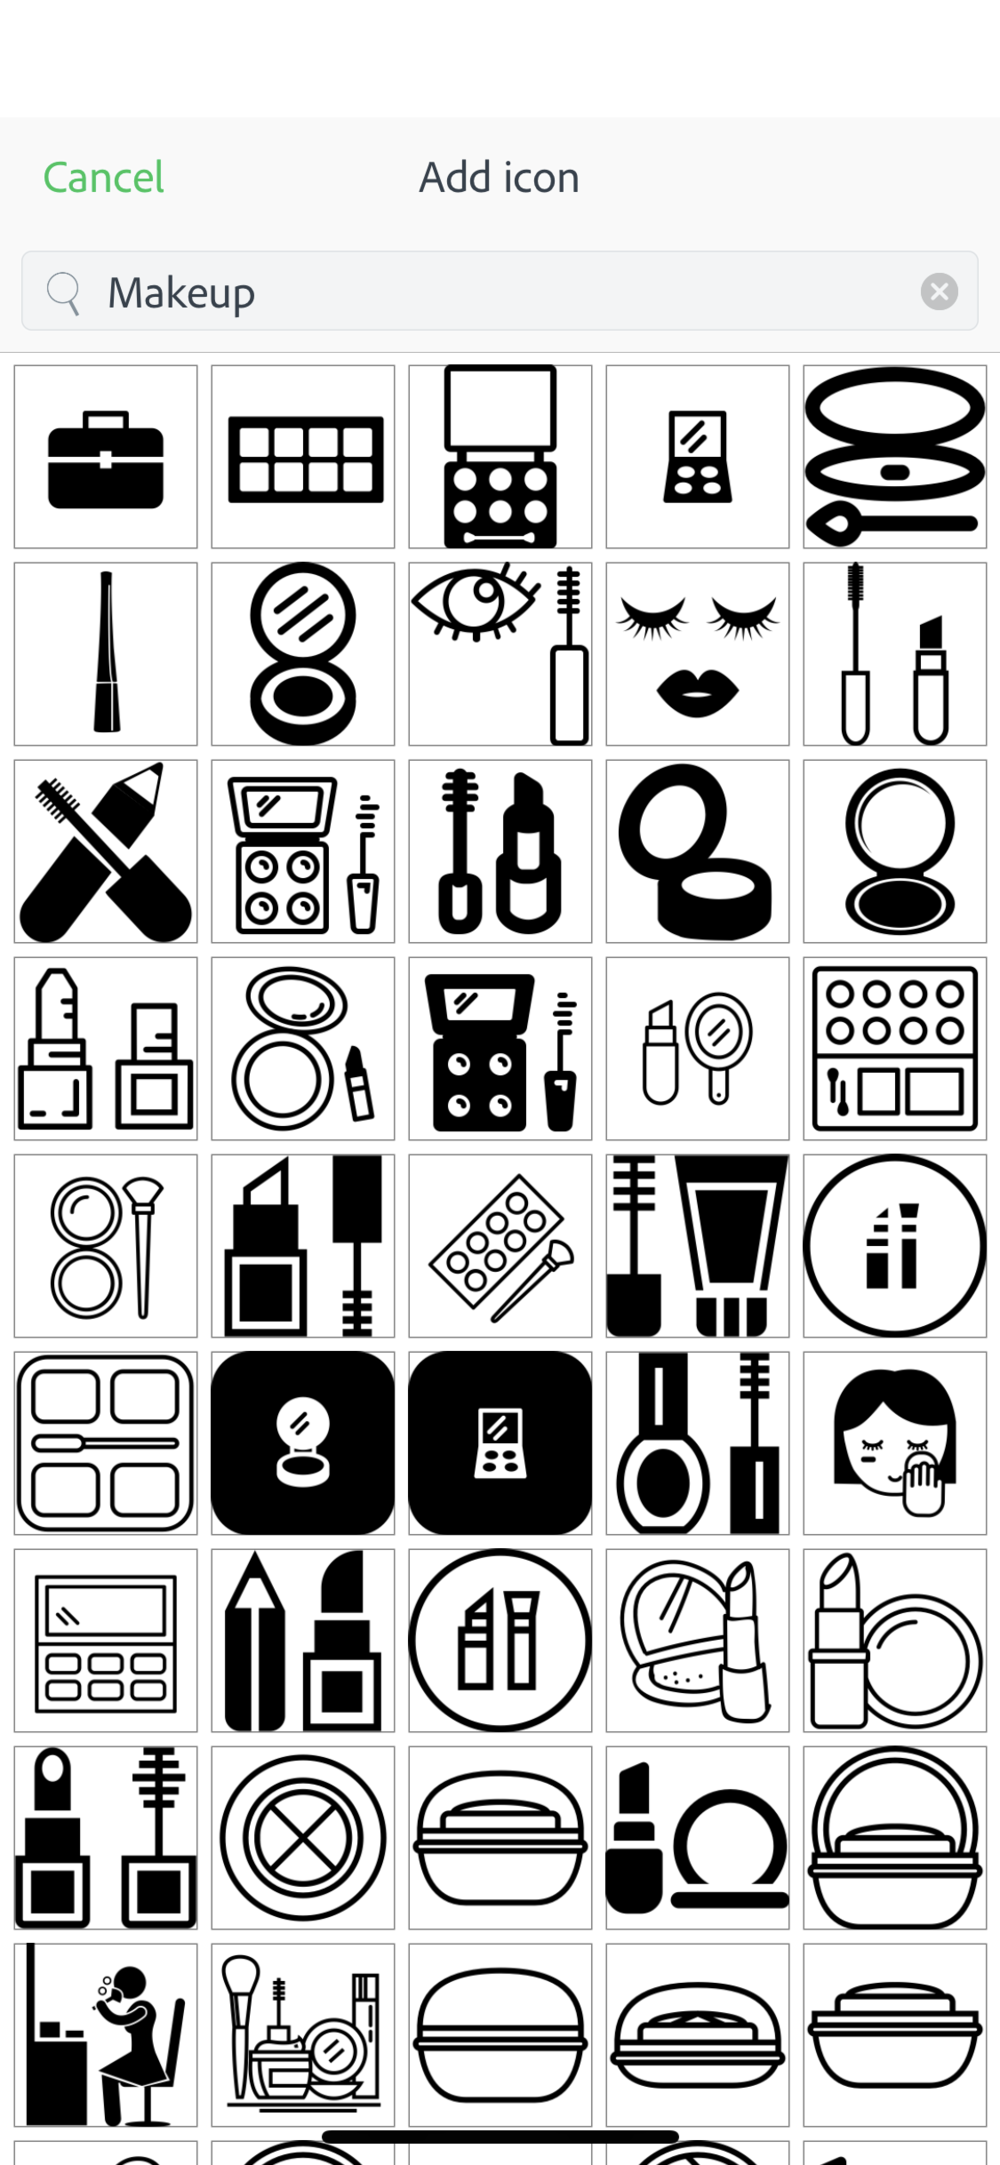 Step 8: - Choose your icons. Again, give it some thought. Make sure it represents you and your brand. There are tons to choose from so spend a little time going through them to find just the right one.